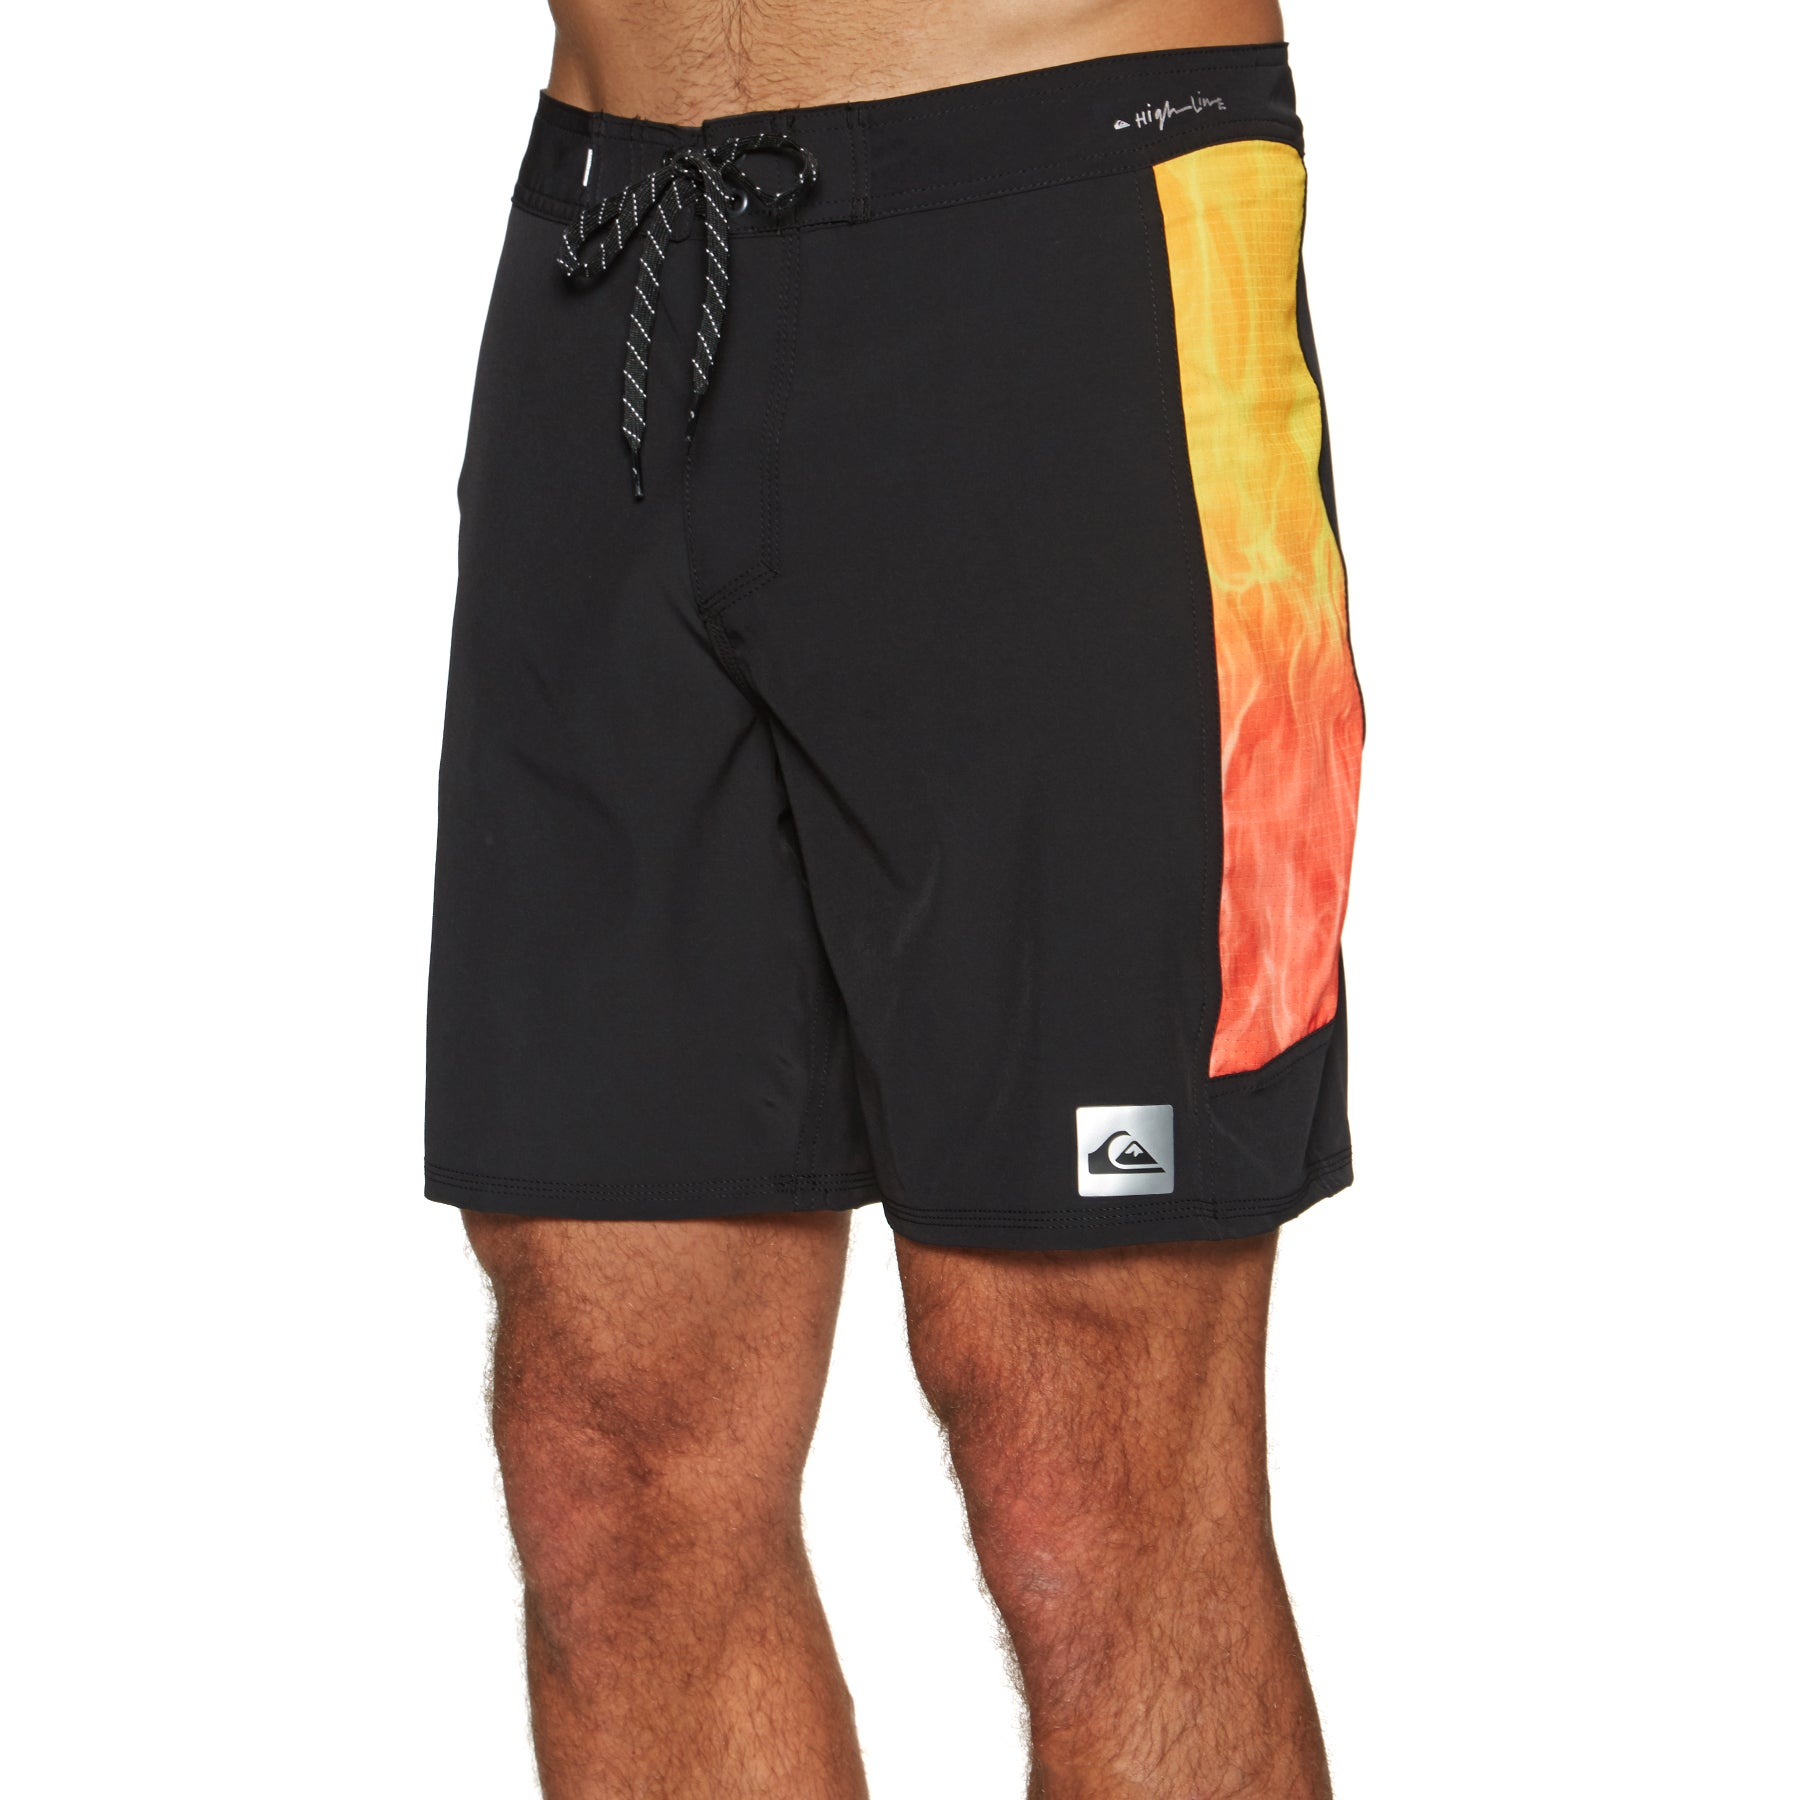 Quiksilver Highline Fade Arch 18 inch Mens Boardshorts